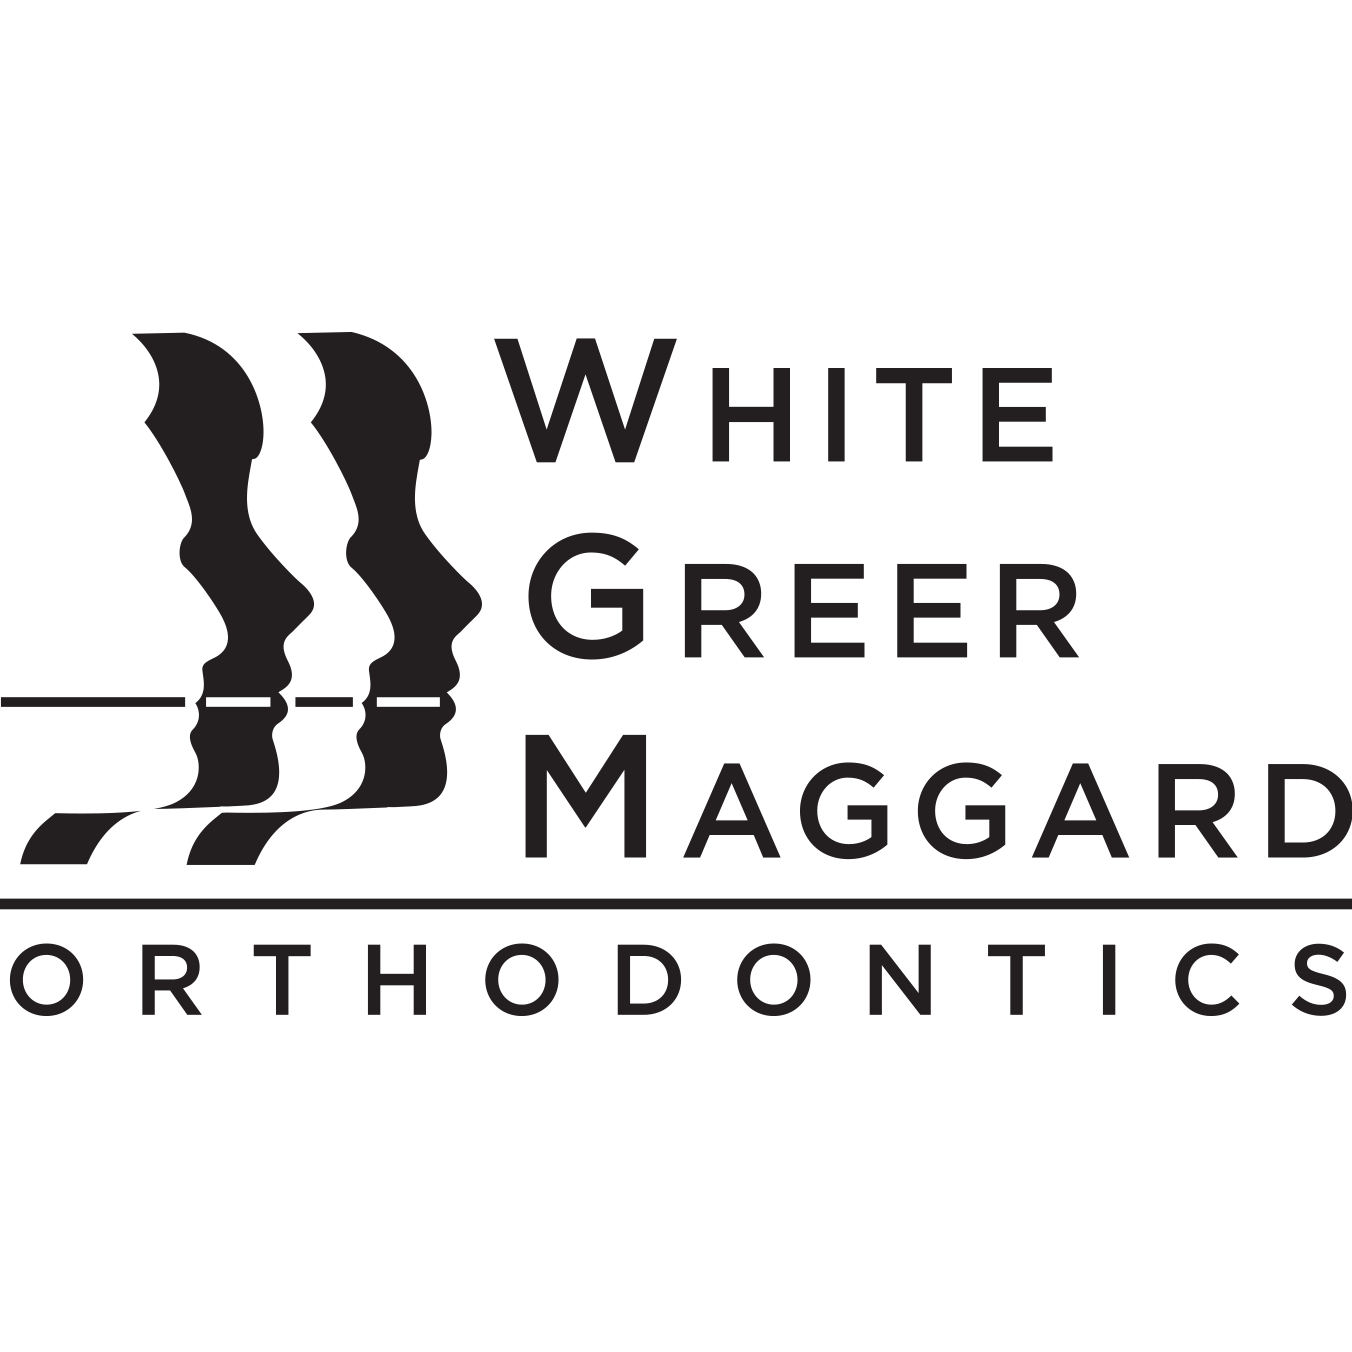 Dr. Morgan Rutledge - White, Greer & Maggard Orthodontics